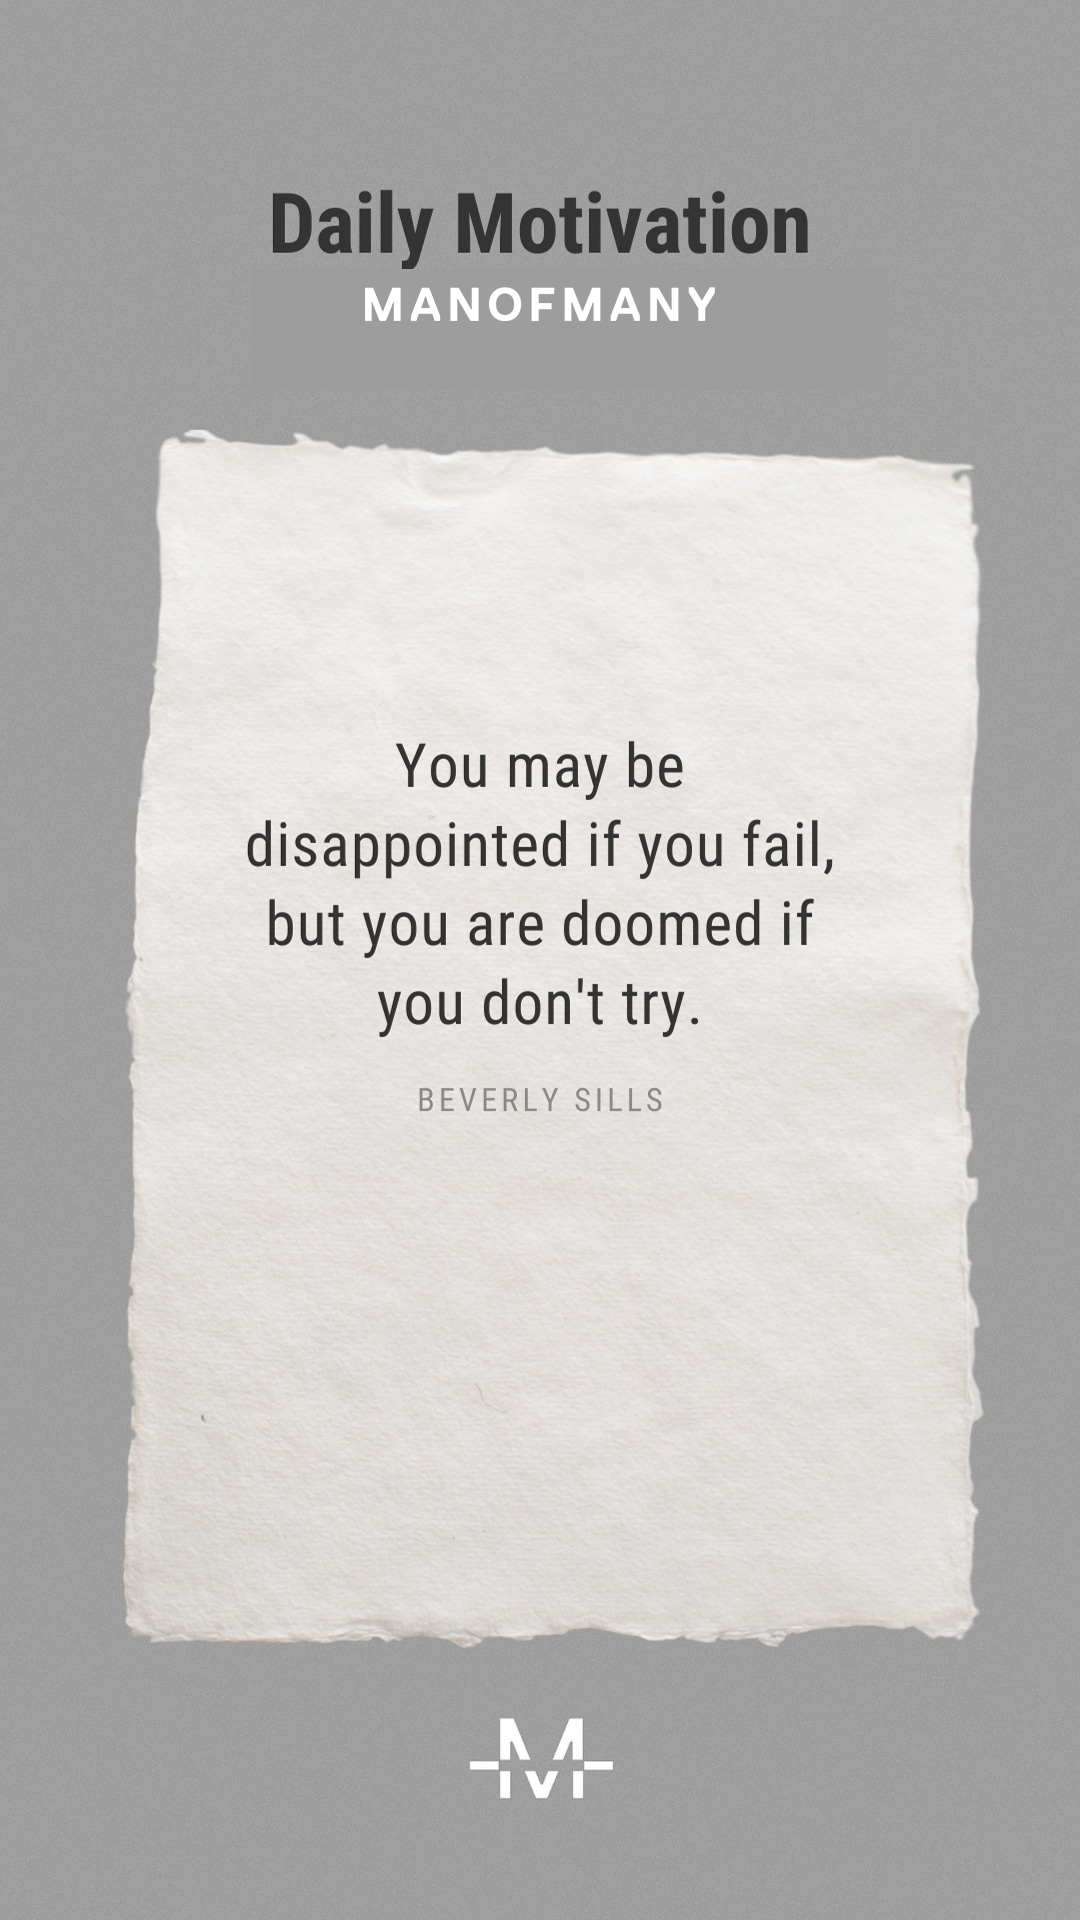 You may be disappointed if you fail, but you are doomed if you don't try. –Beverly Sills quote